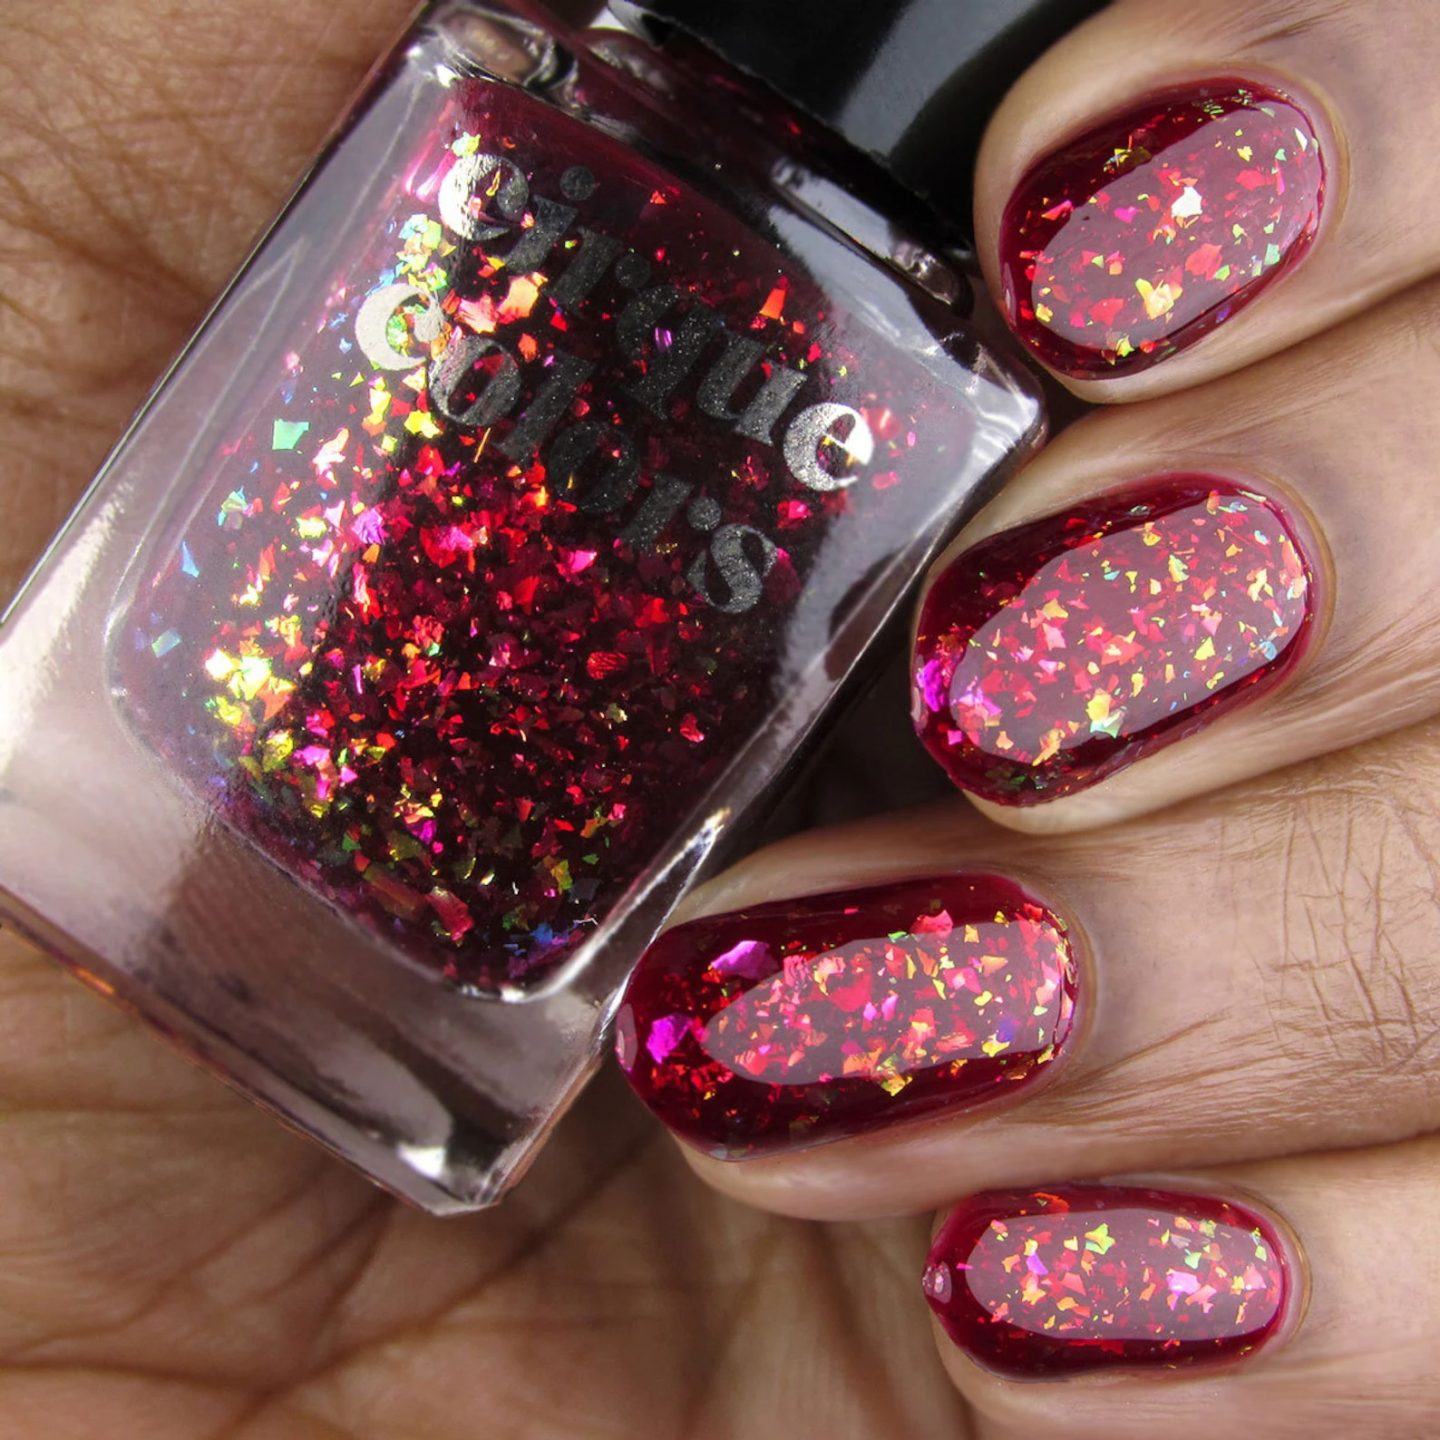 Holographic burgundy nail polish with glitter